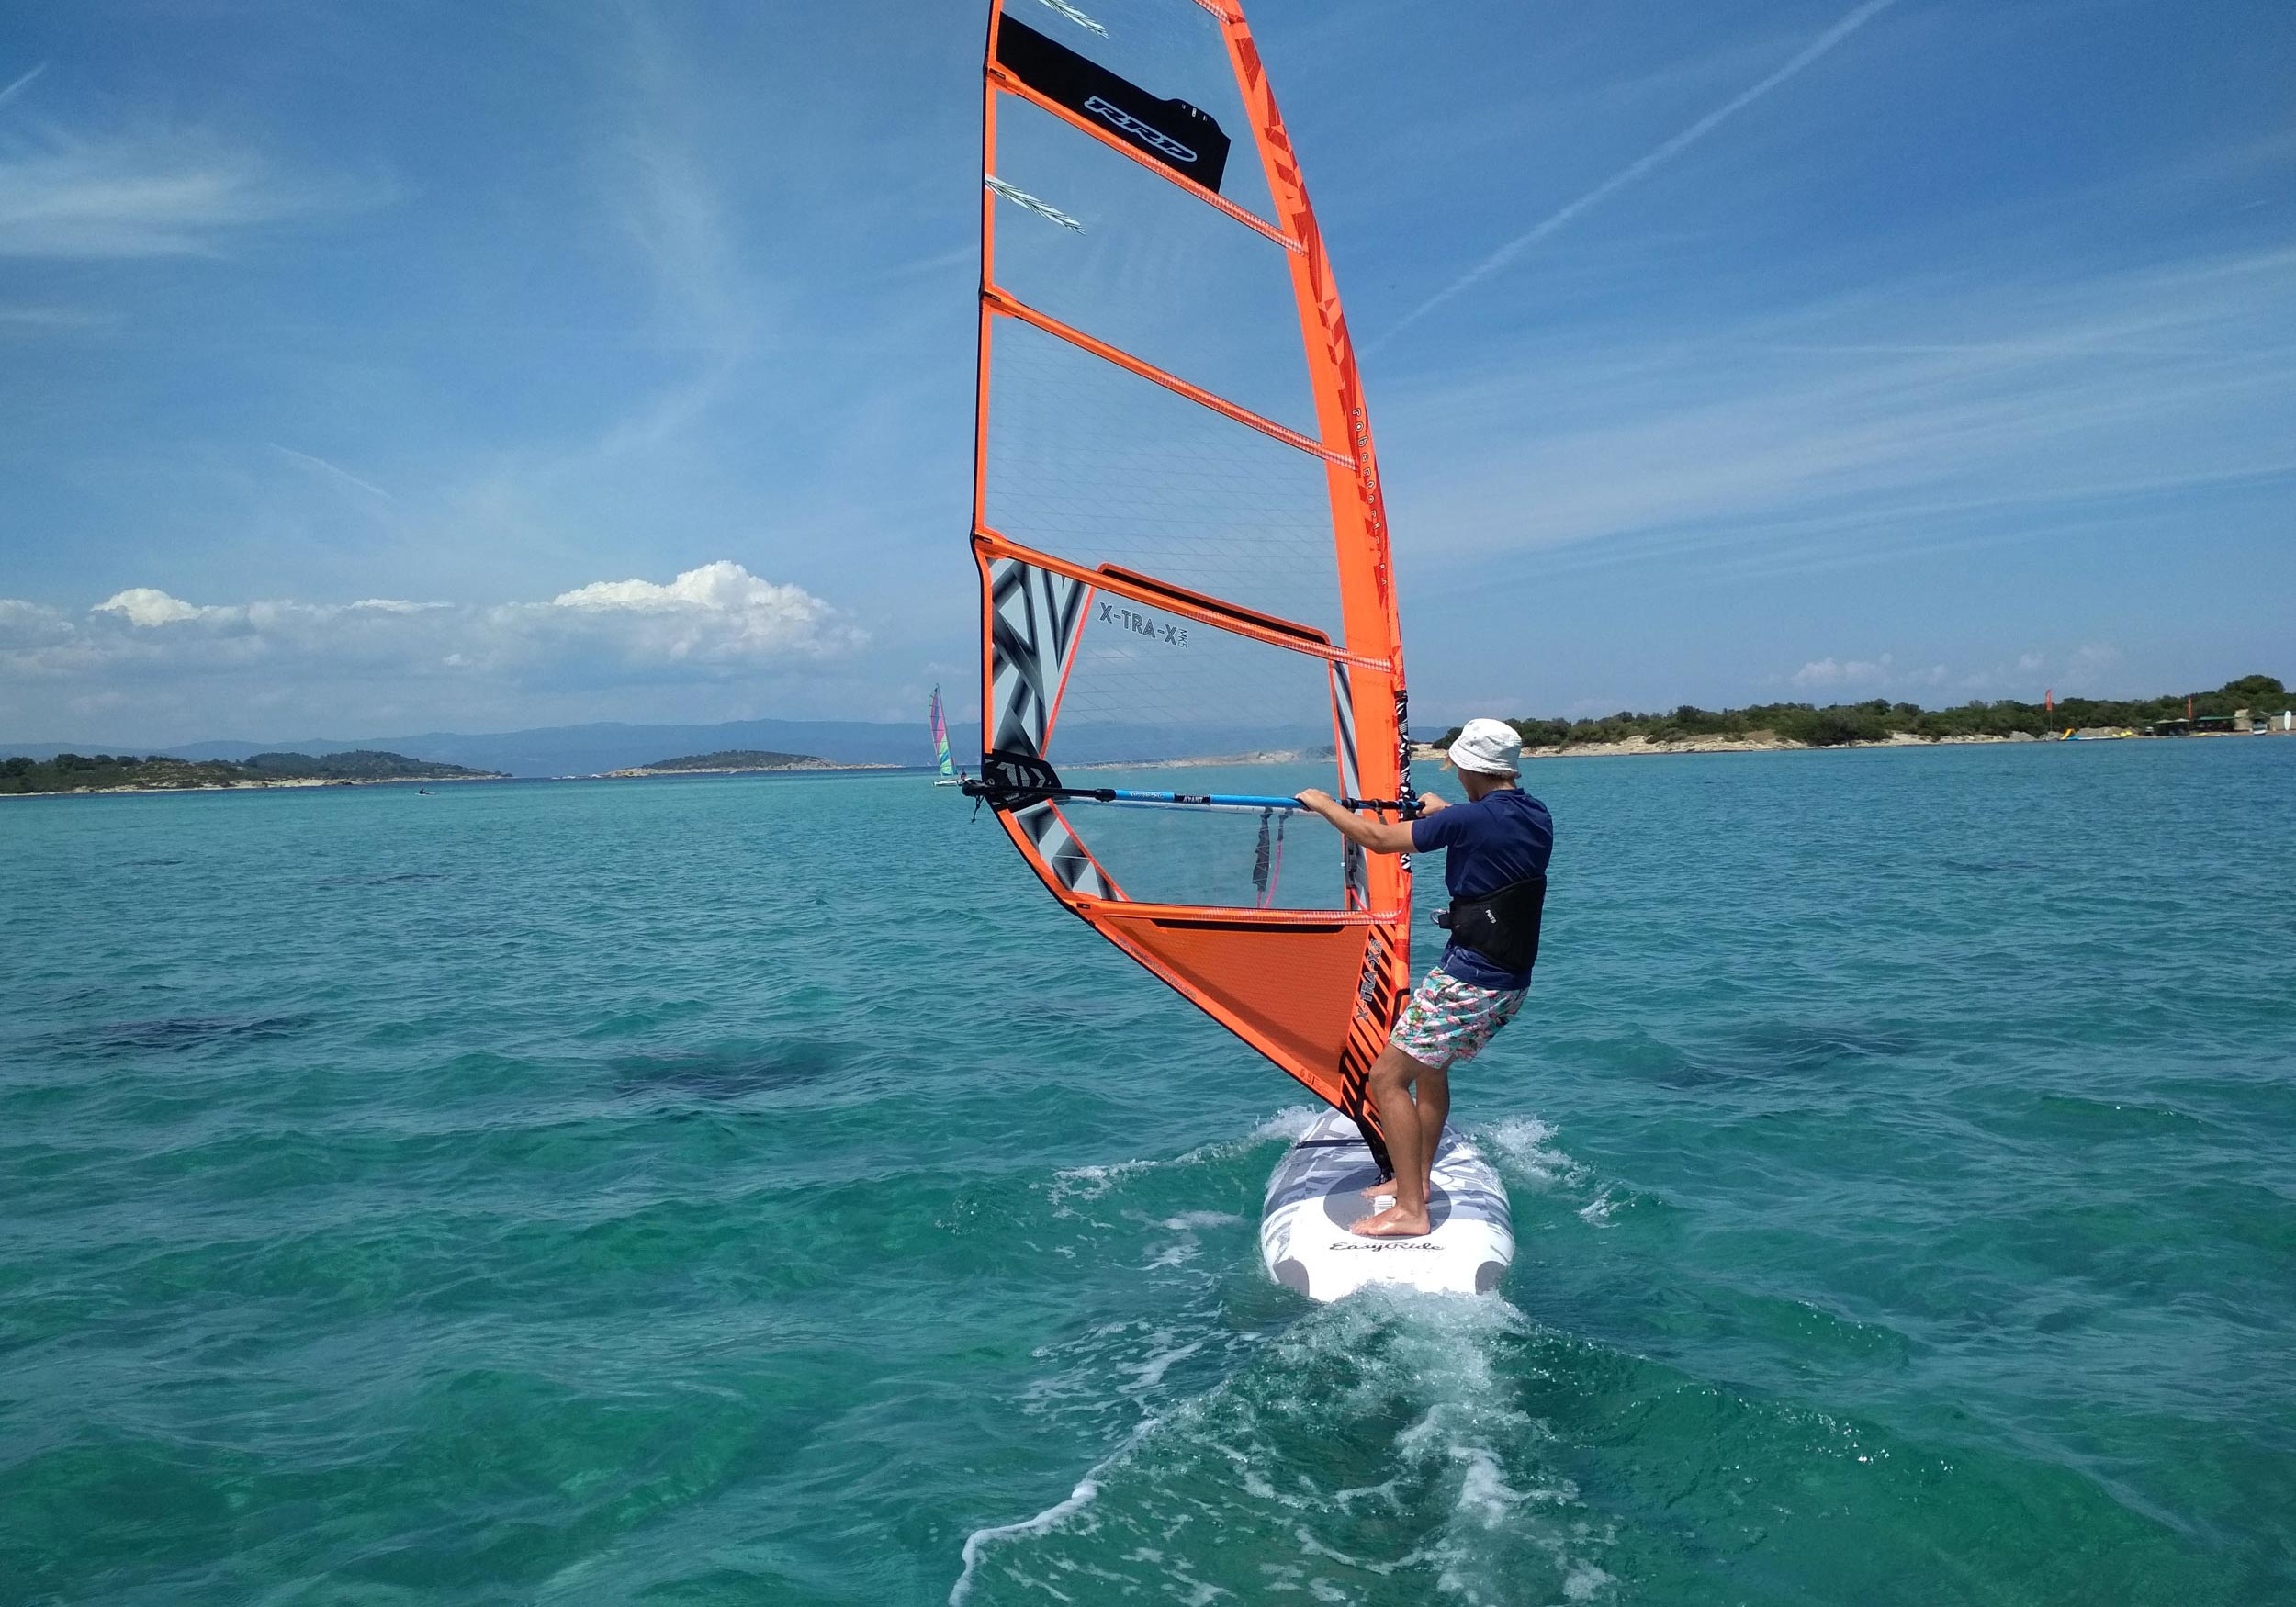 An adult windsurfing in the blue sea